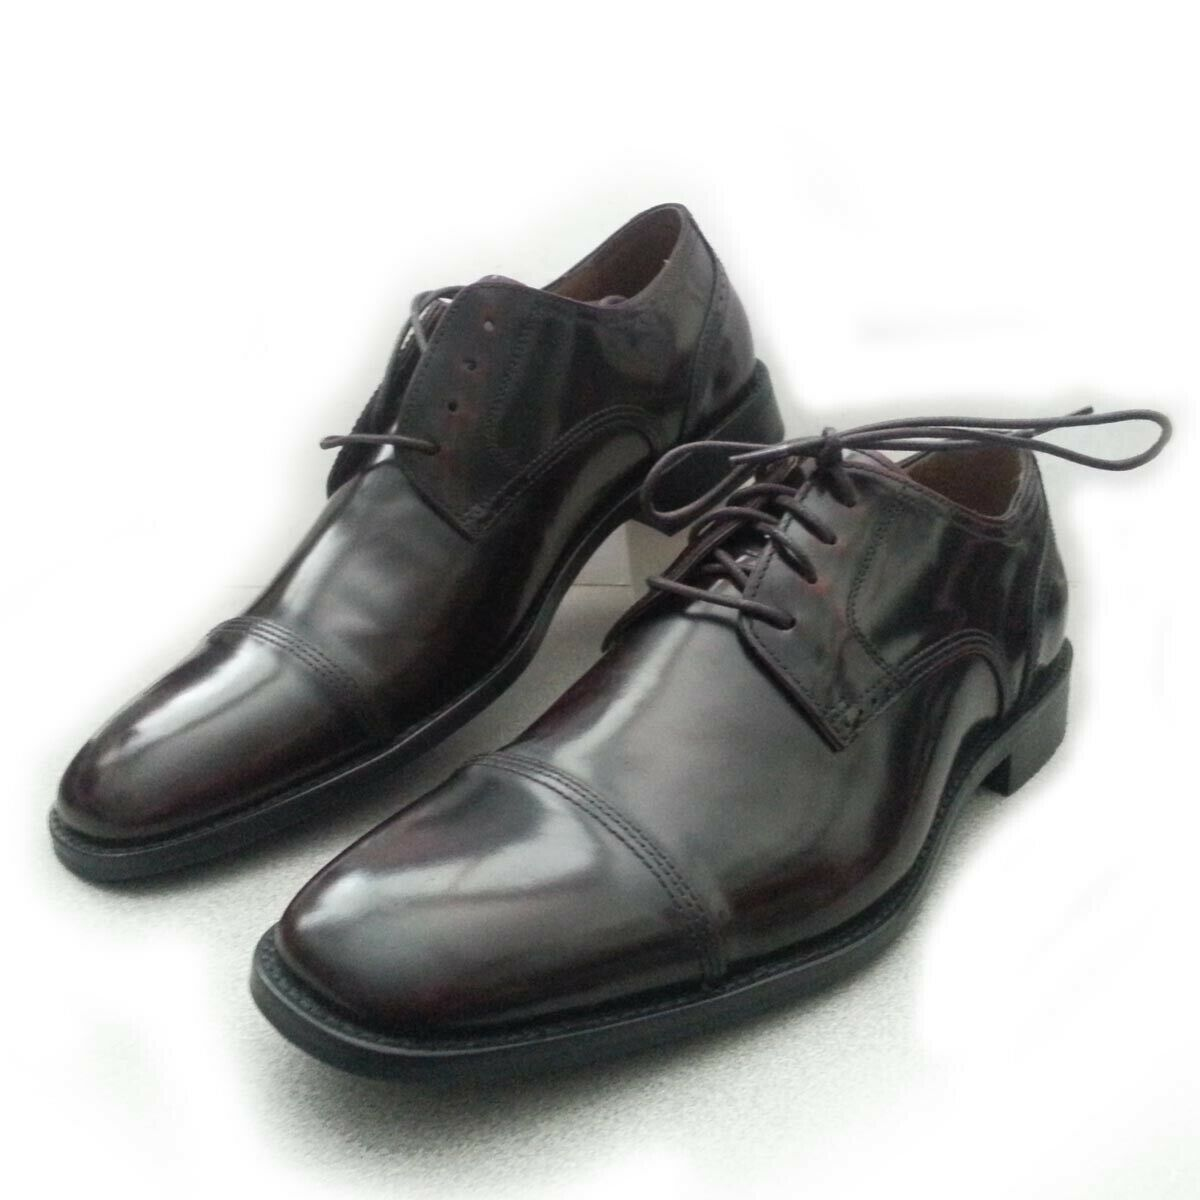 Sale  Good Price!  https://t.co/RbbNKsAKPs Jonhston & Murphy Men Dress #shoes size 8.5 Knowla https://t.co/VBC0hAhtdx